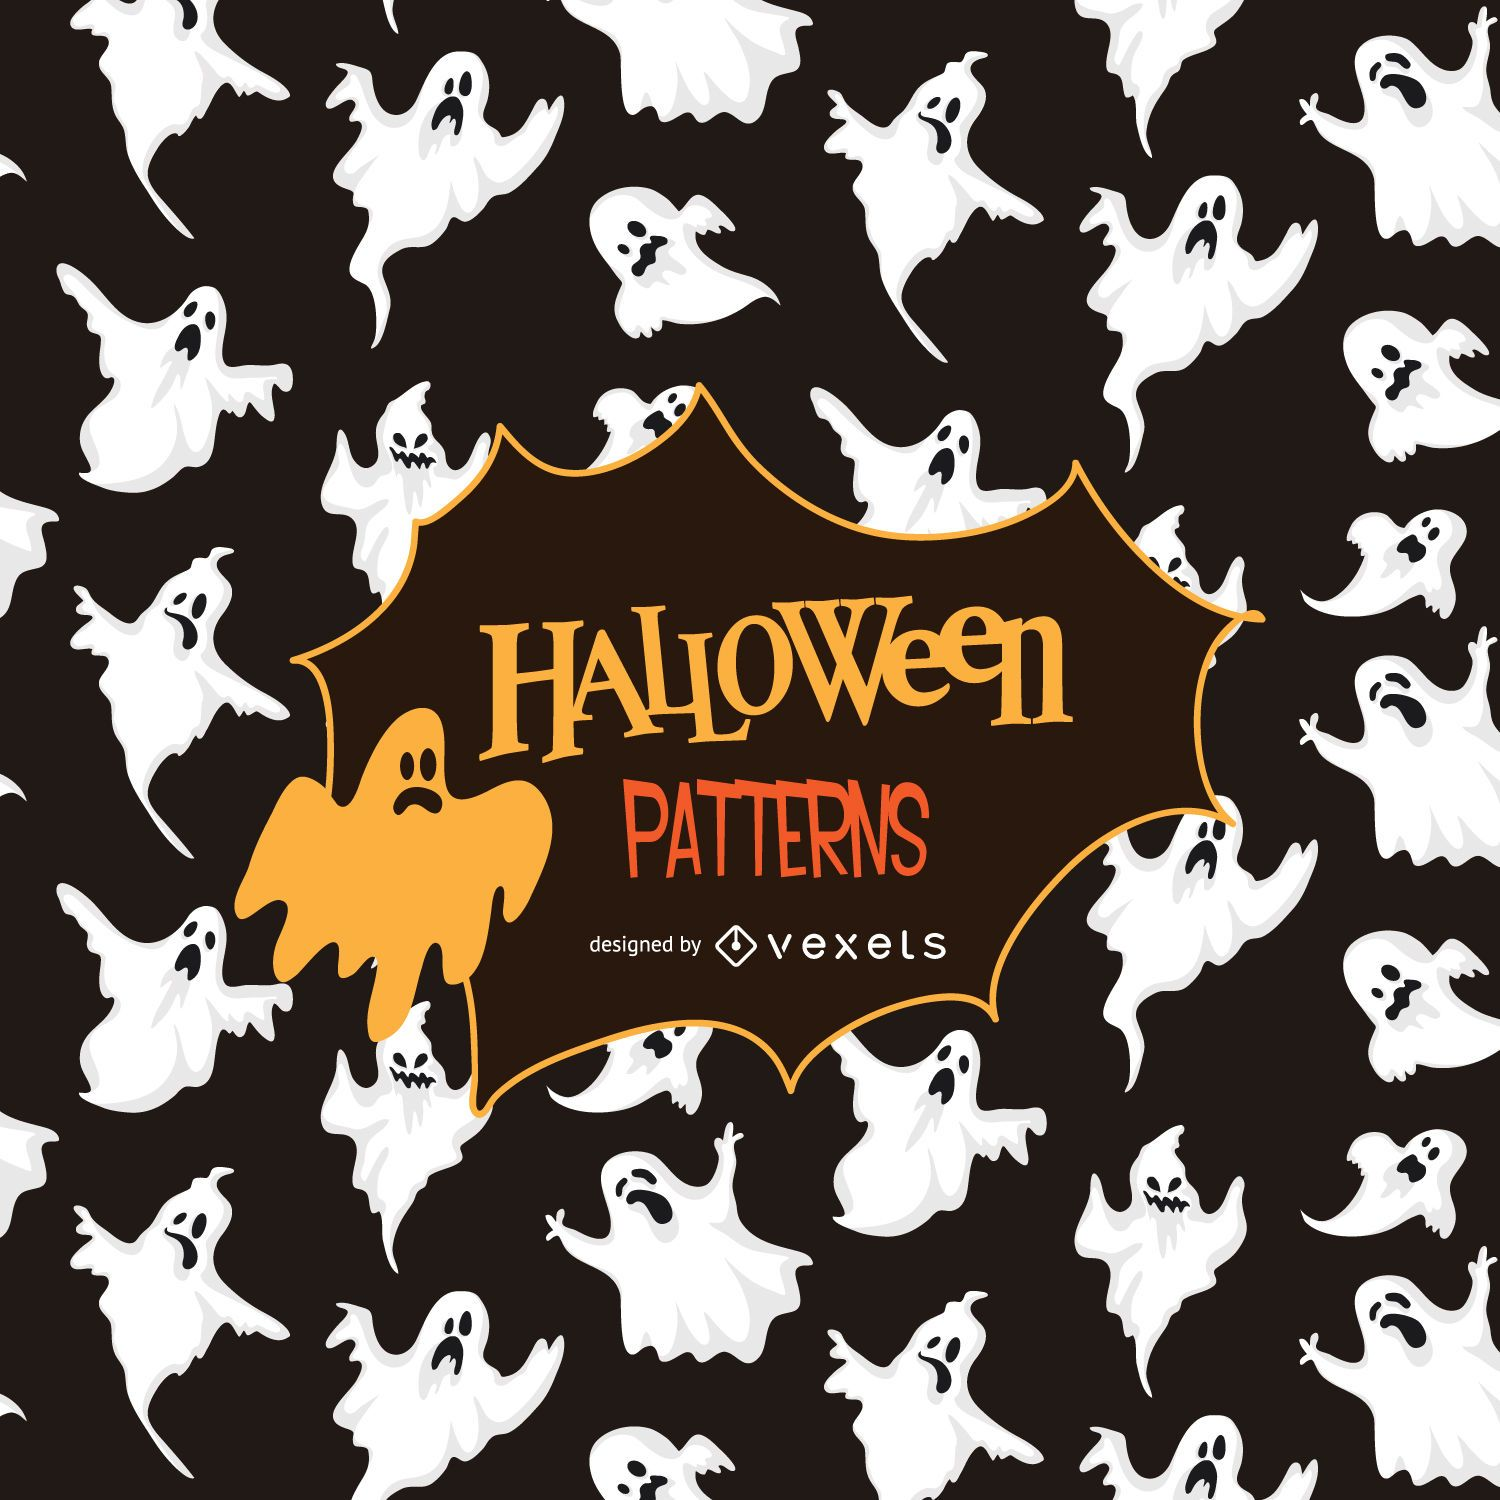 Halloween Ghost Silhouette Pattern Vector Download